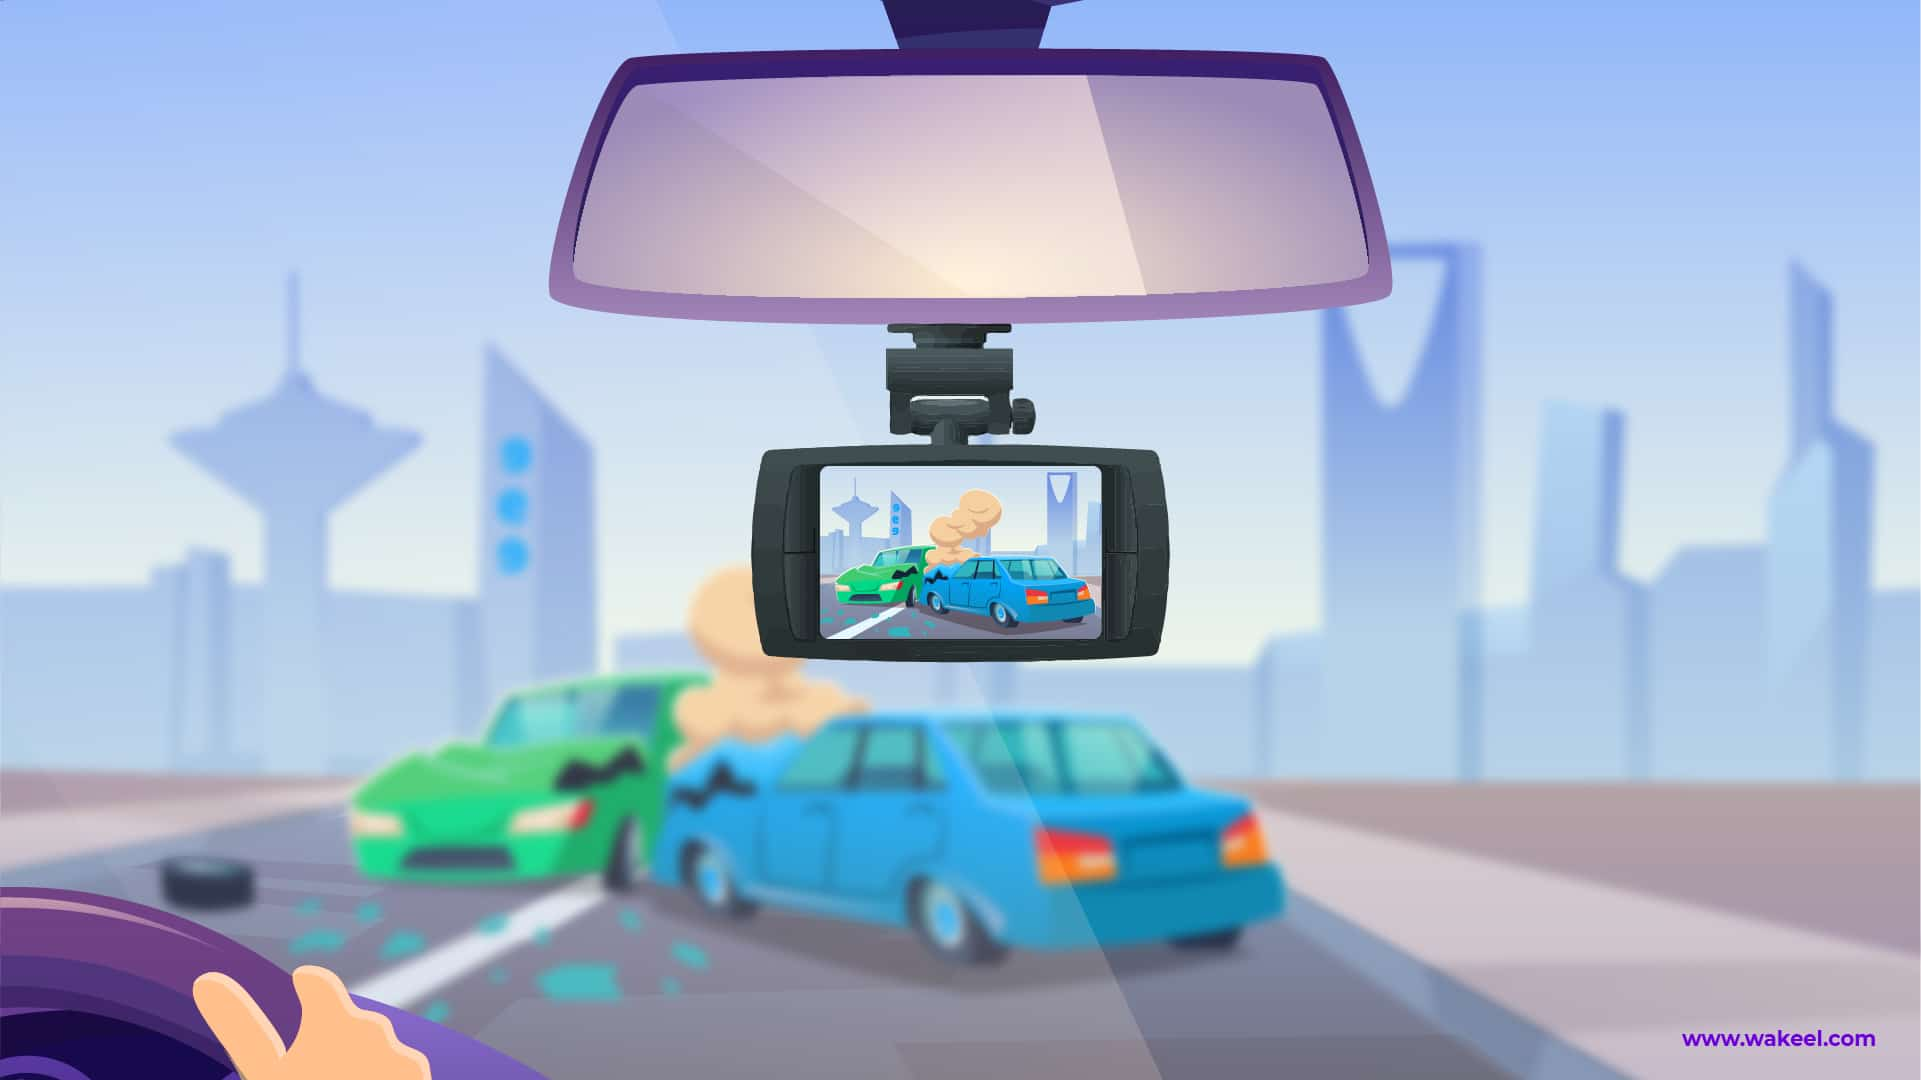 Securing Cars By Using a Dashcam in Saudi